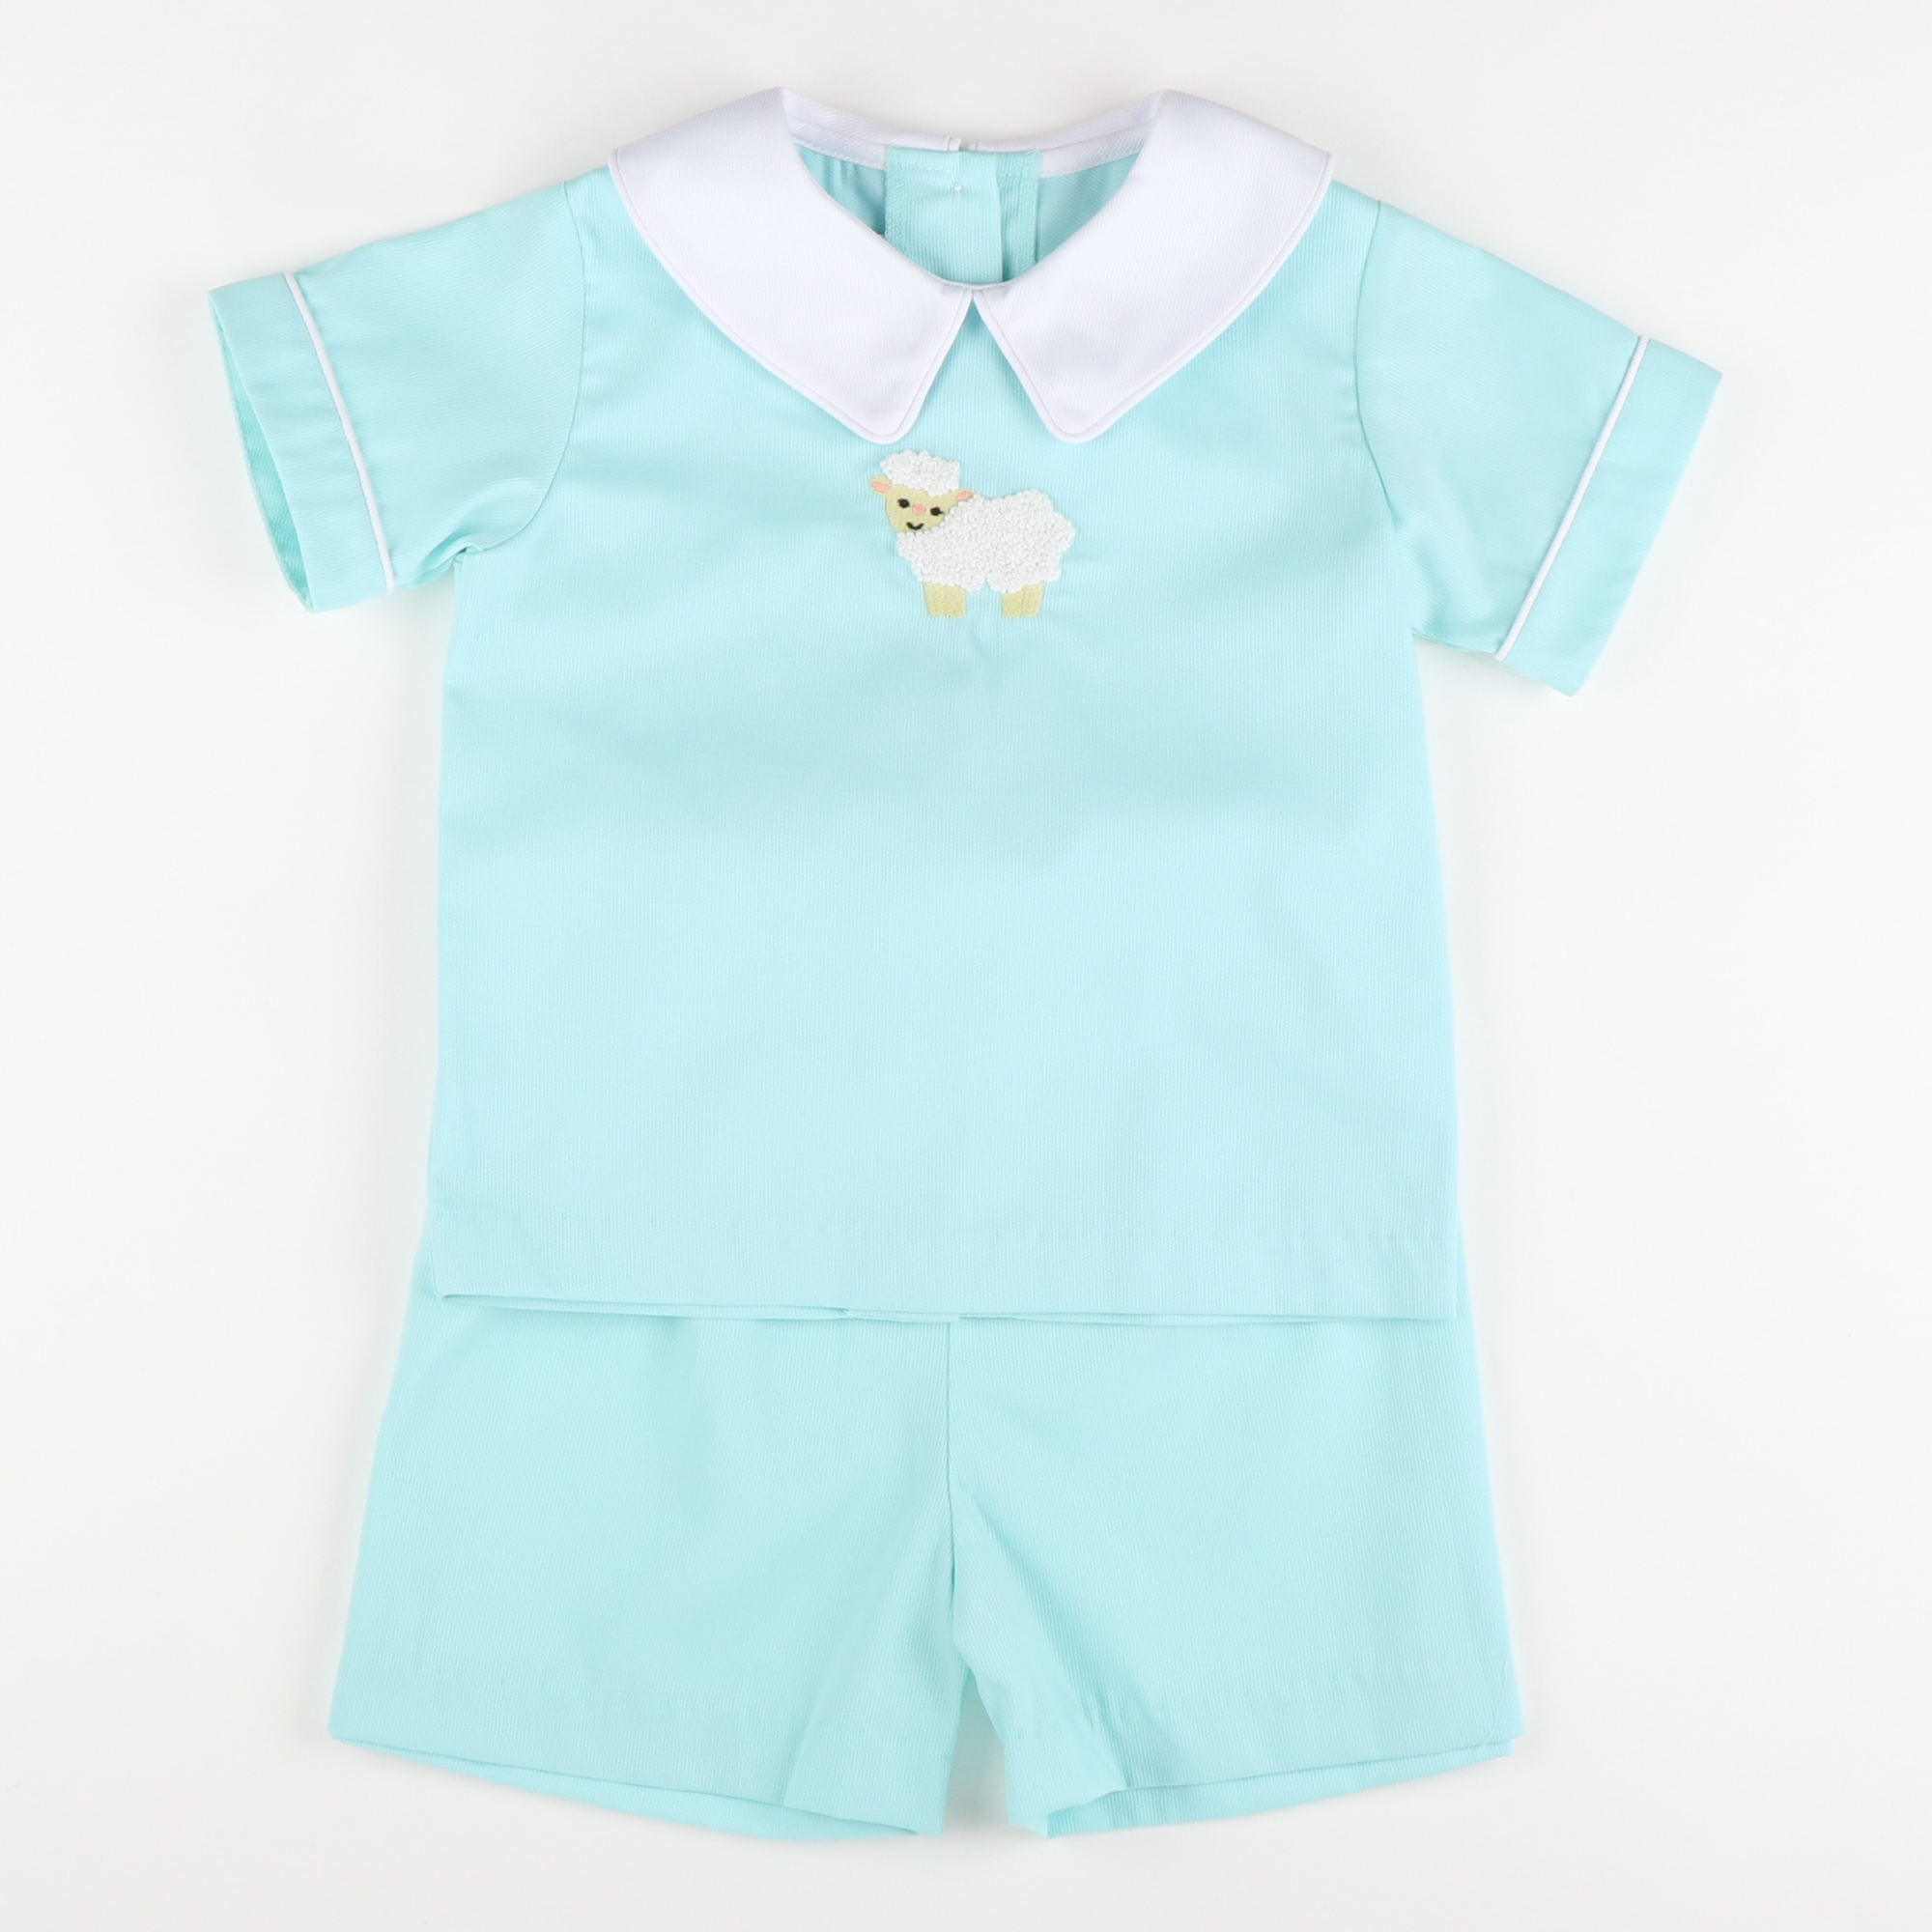 Embroidered Lamb Collared Short Set - Mint Pique